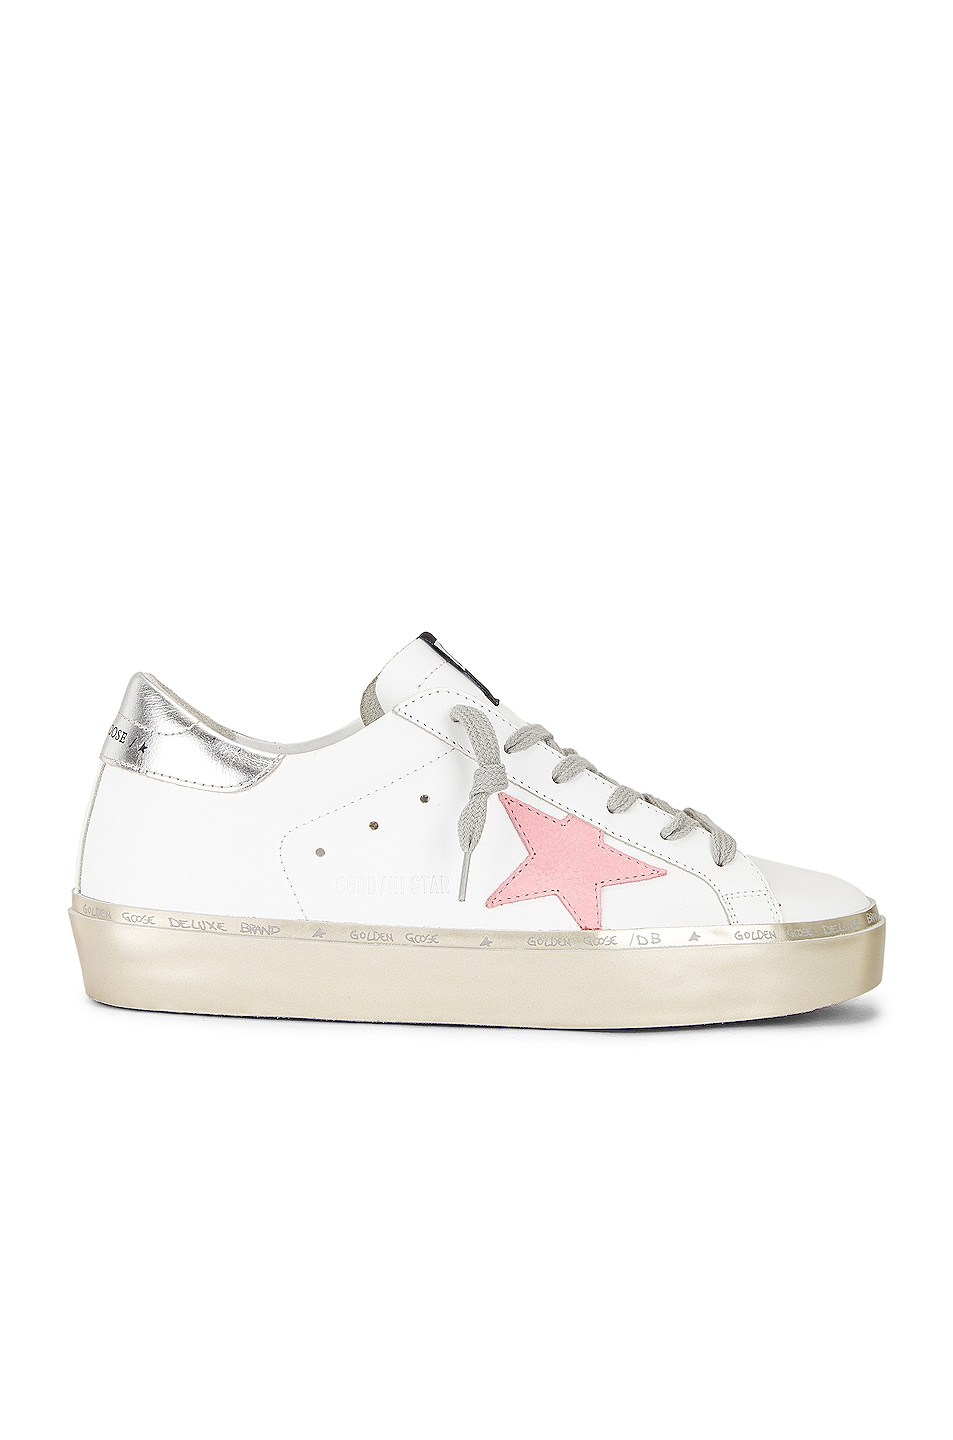 Image 1 of Golden Goose Hi Star Sneaker in White, Pink Pastel, Silver & Gold